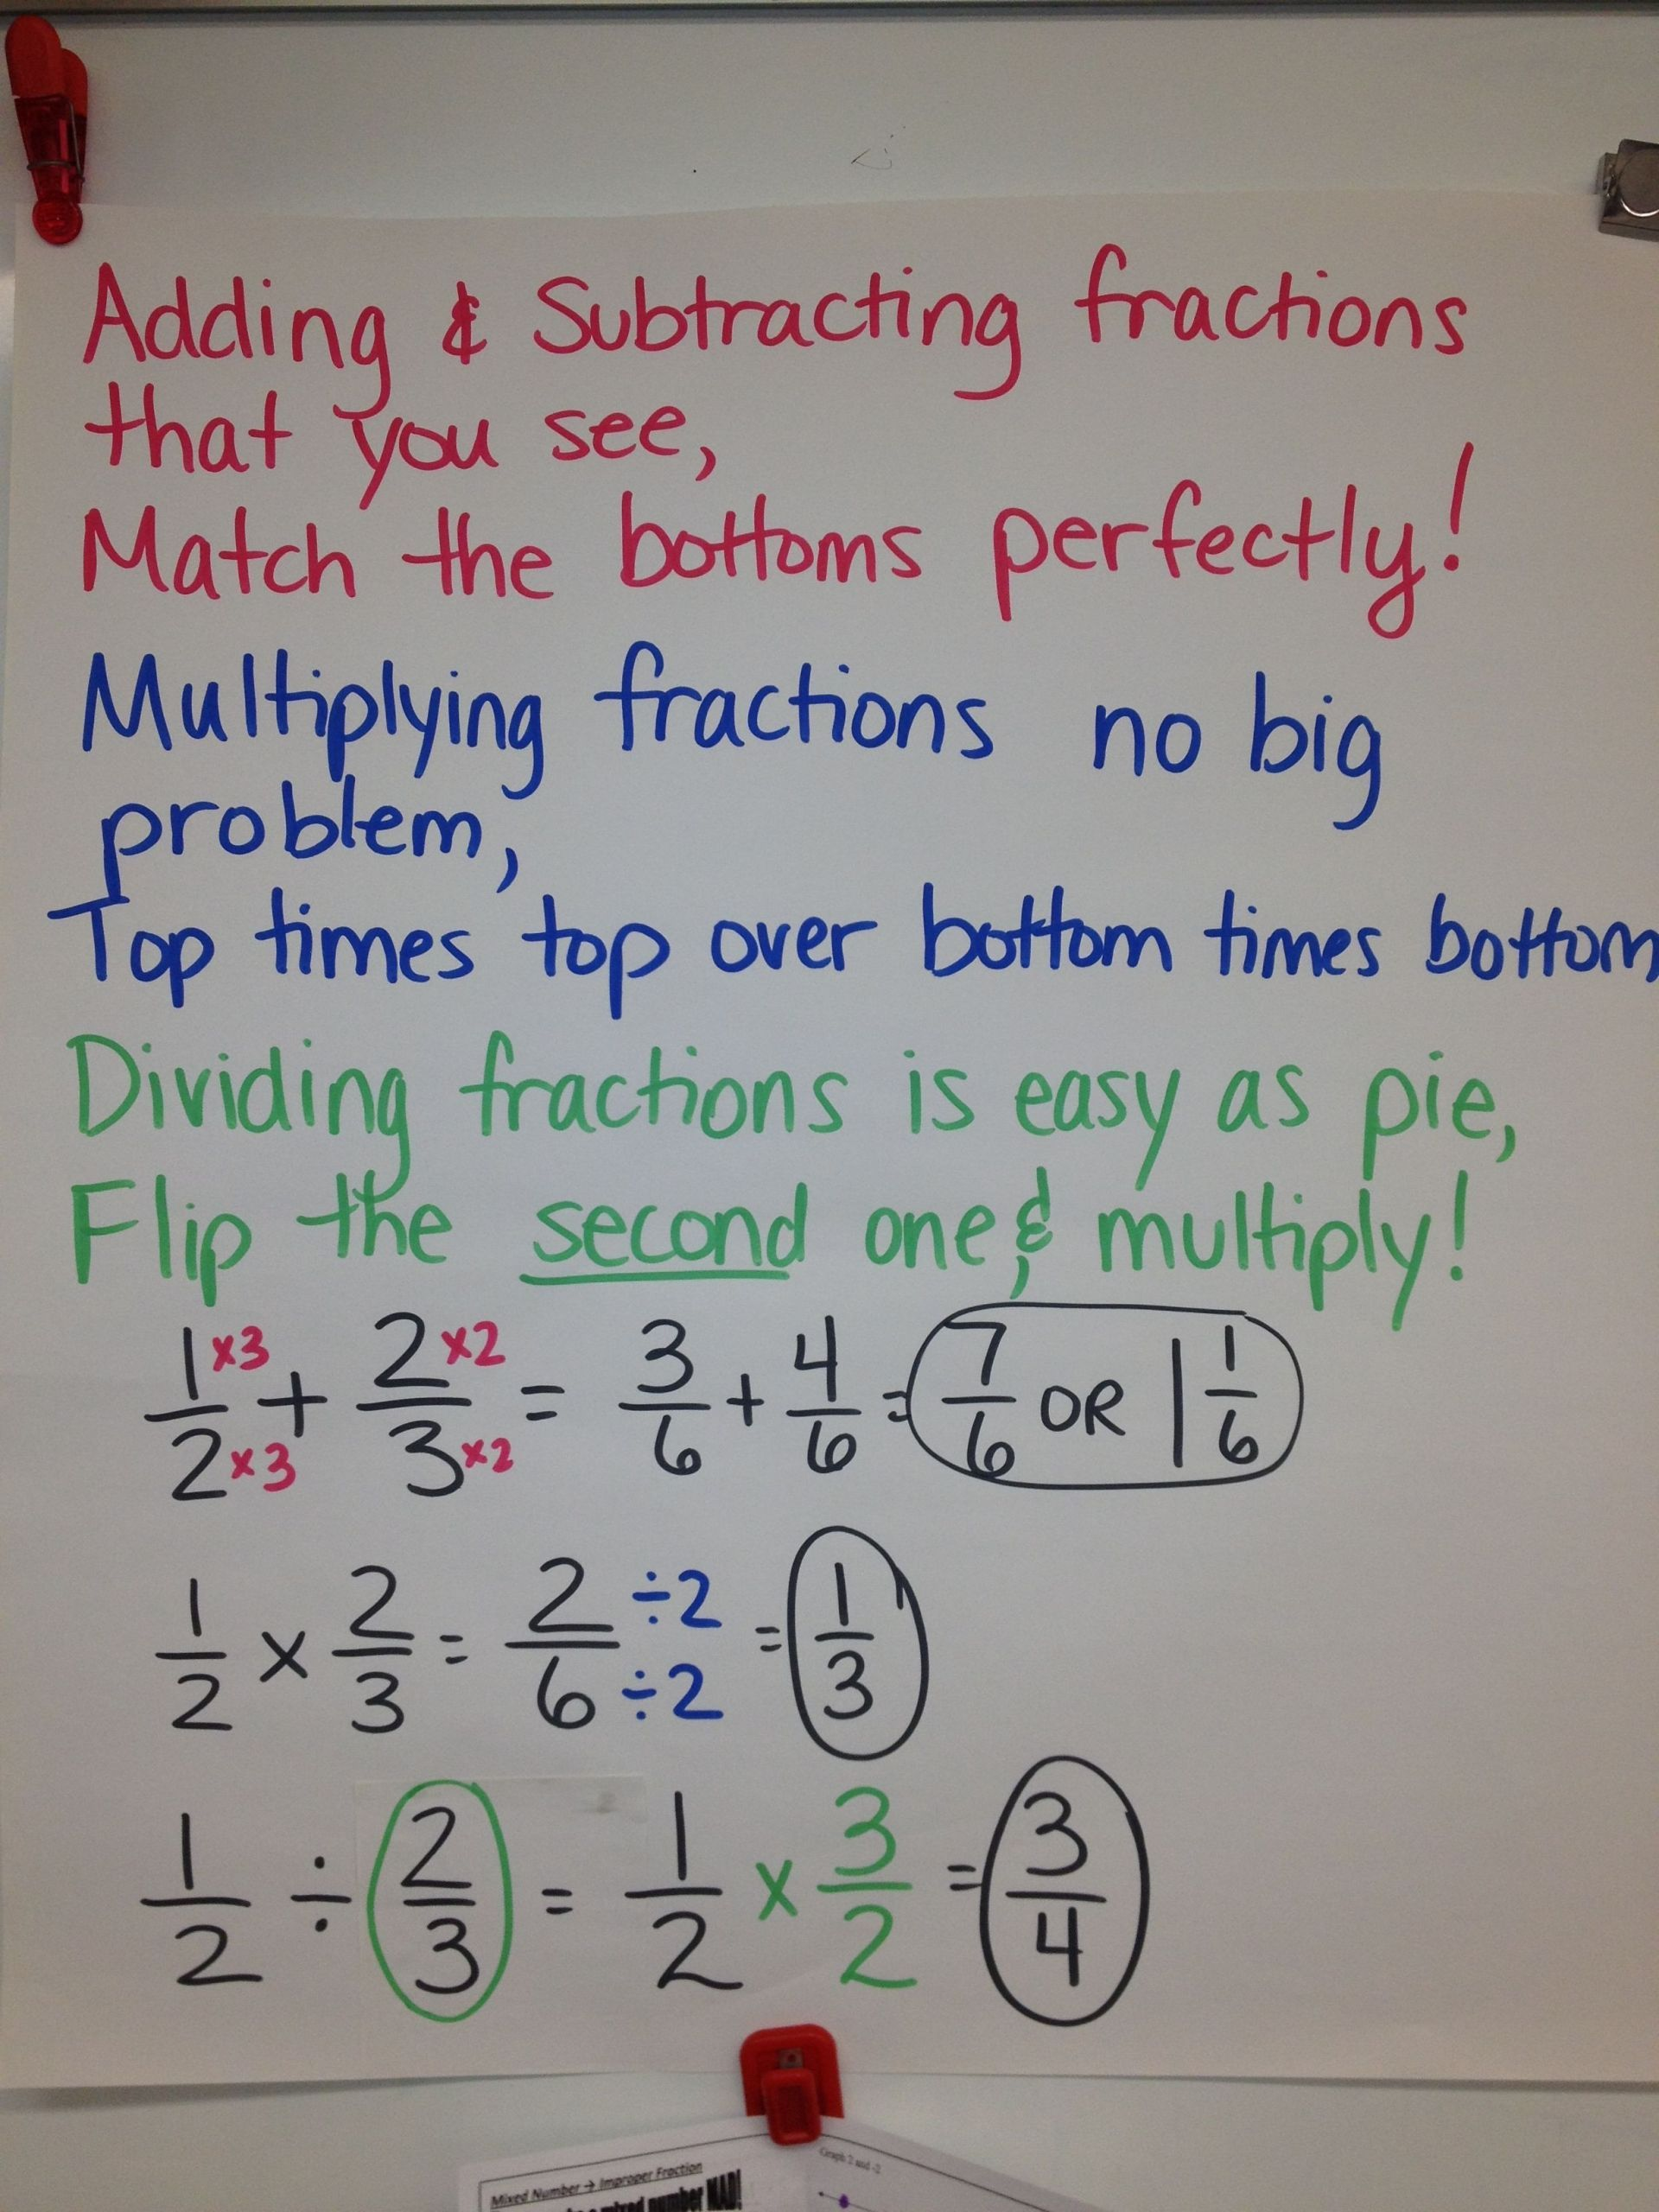 3 Worksheet Cross Multiplication Fractions Fifth Grade In